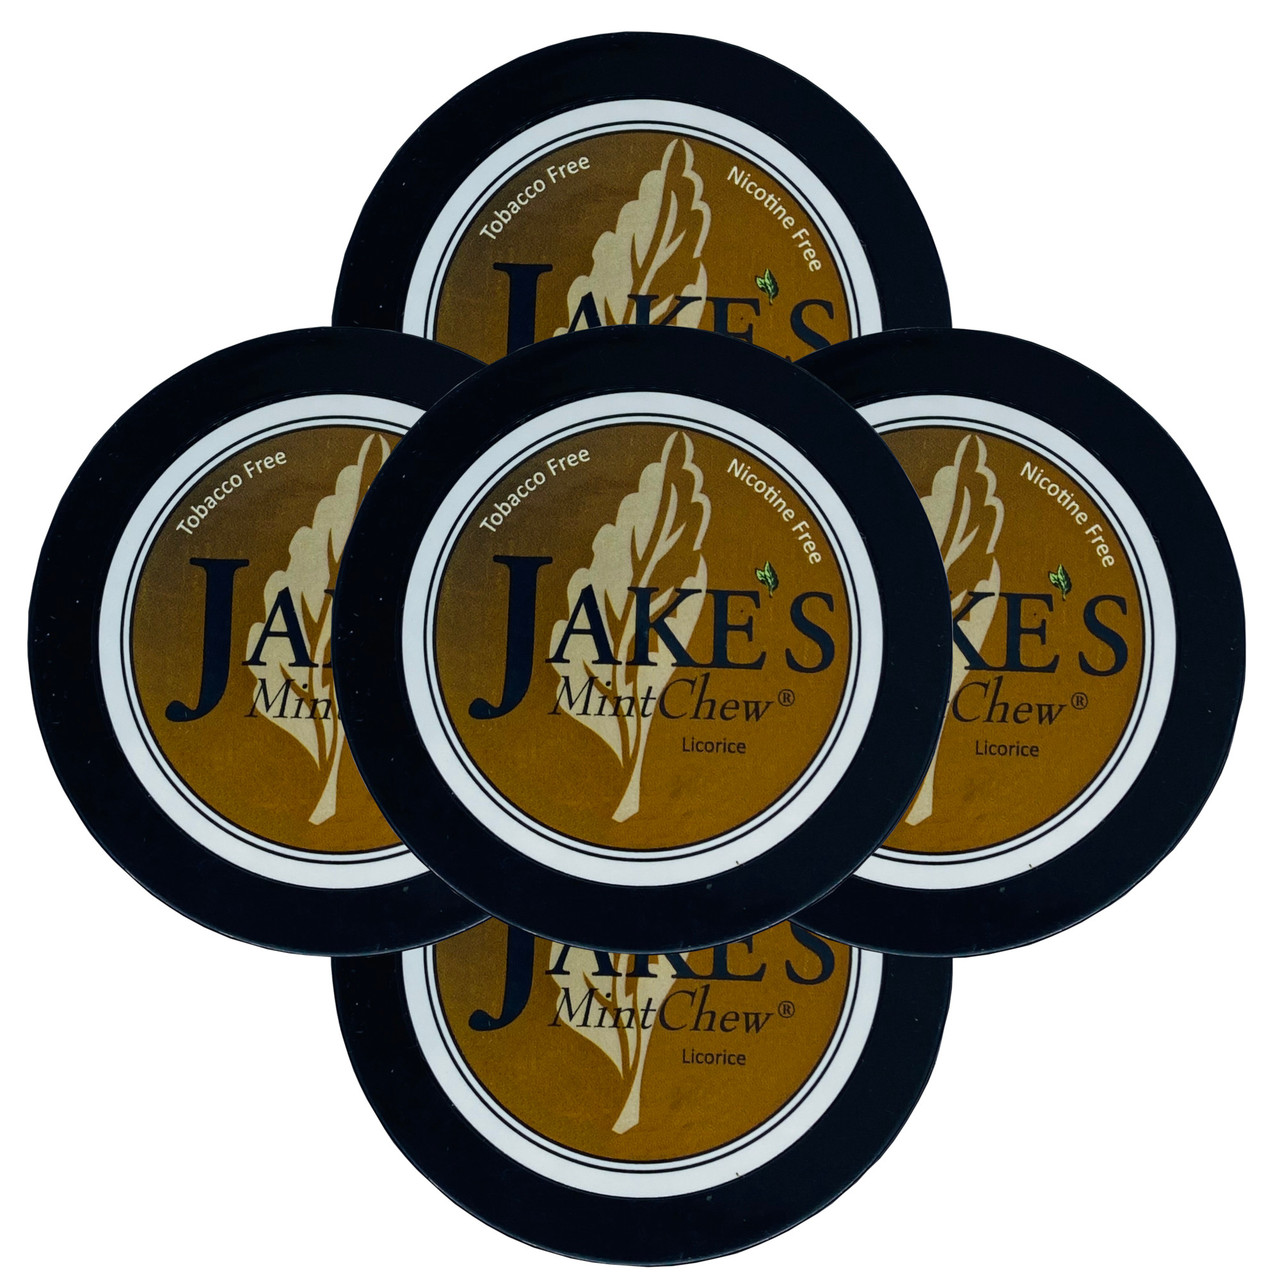 Jake's Mint Herbal Chew Licorice 5 Cans